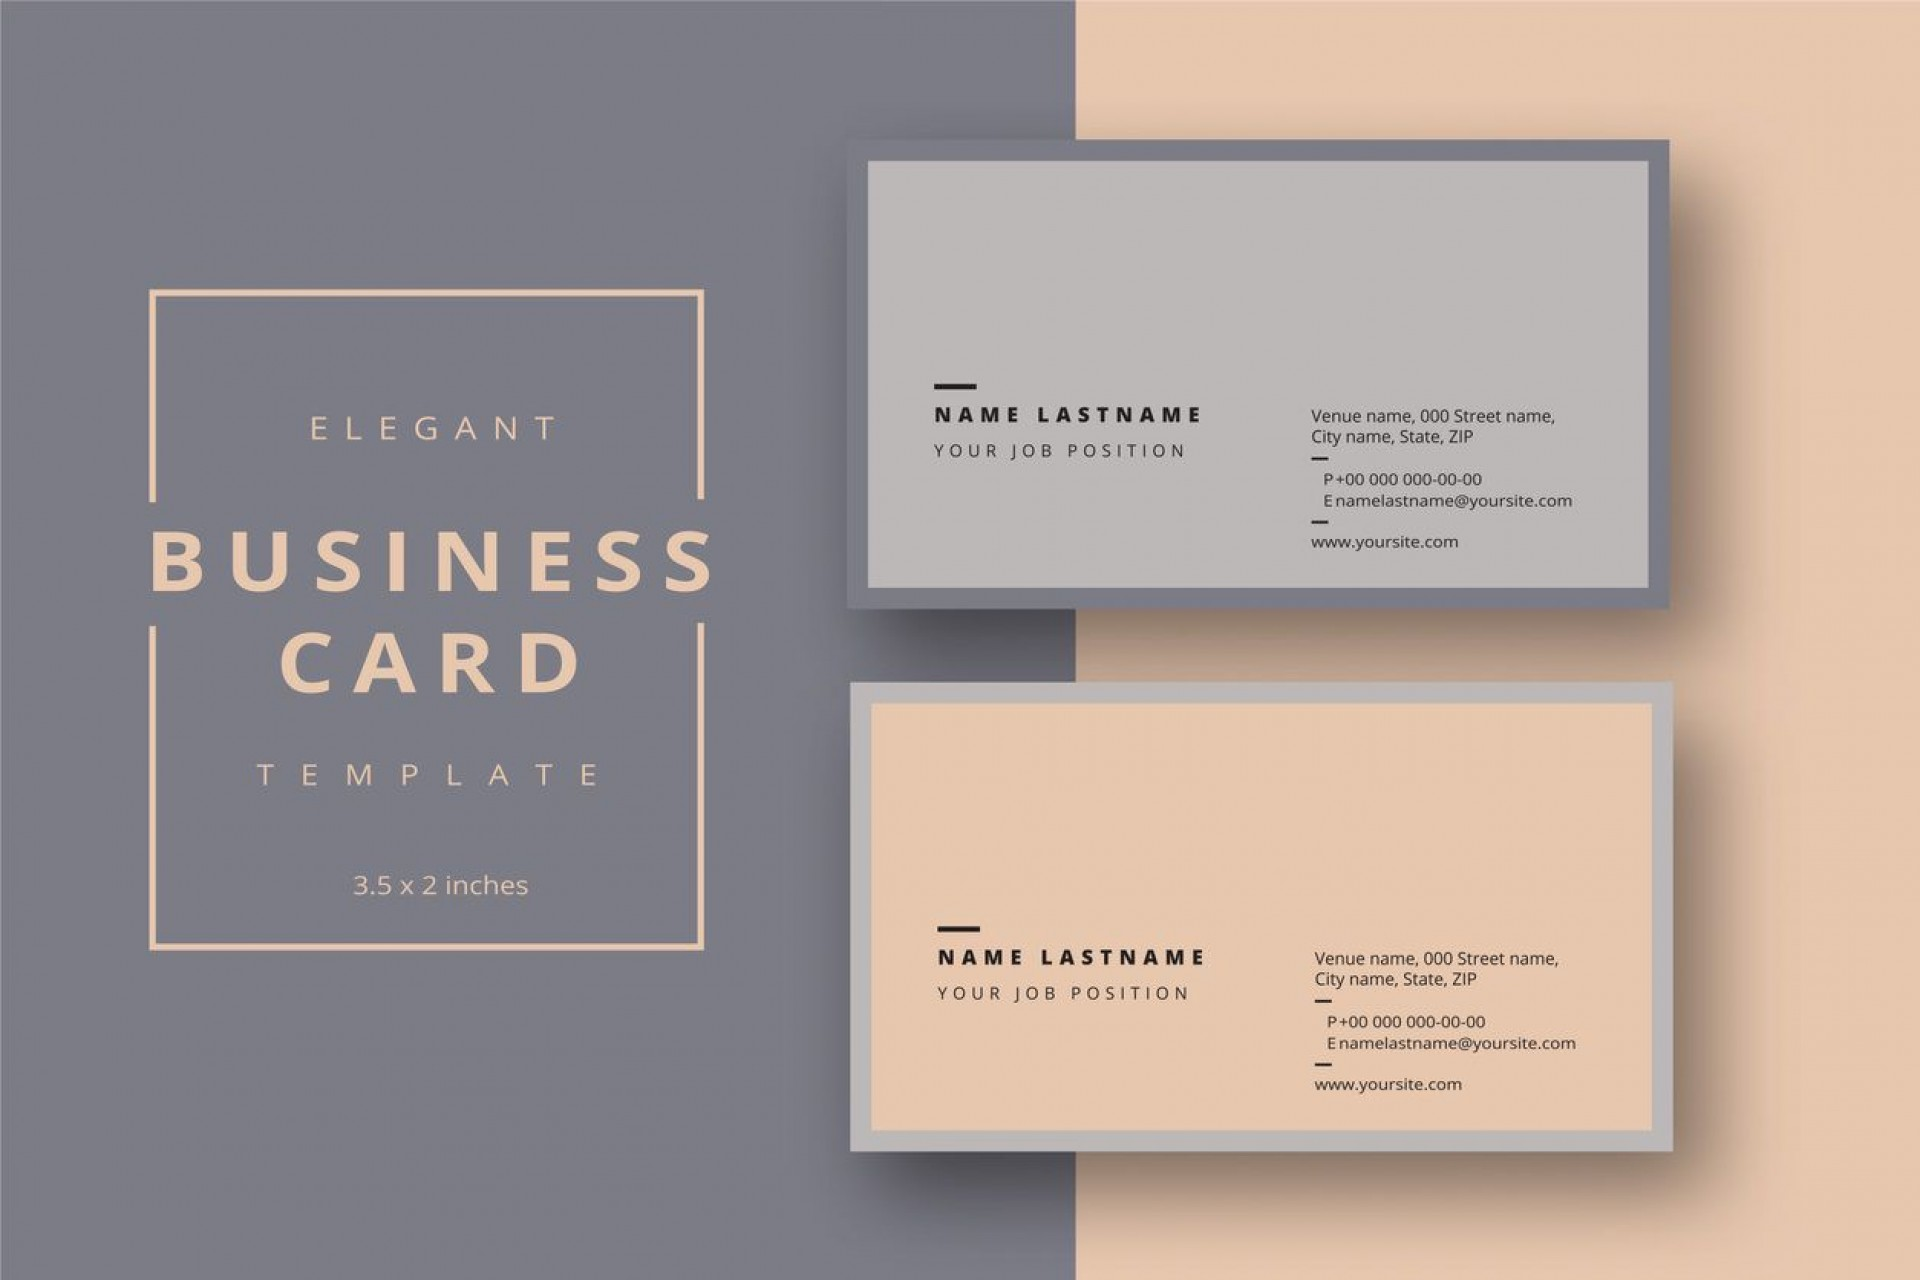 006 Staggering Simple Busines Card Template Microsoft Word Highest Clarity 1920